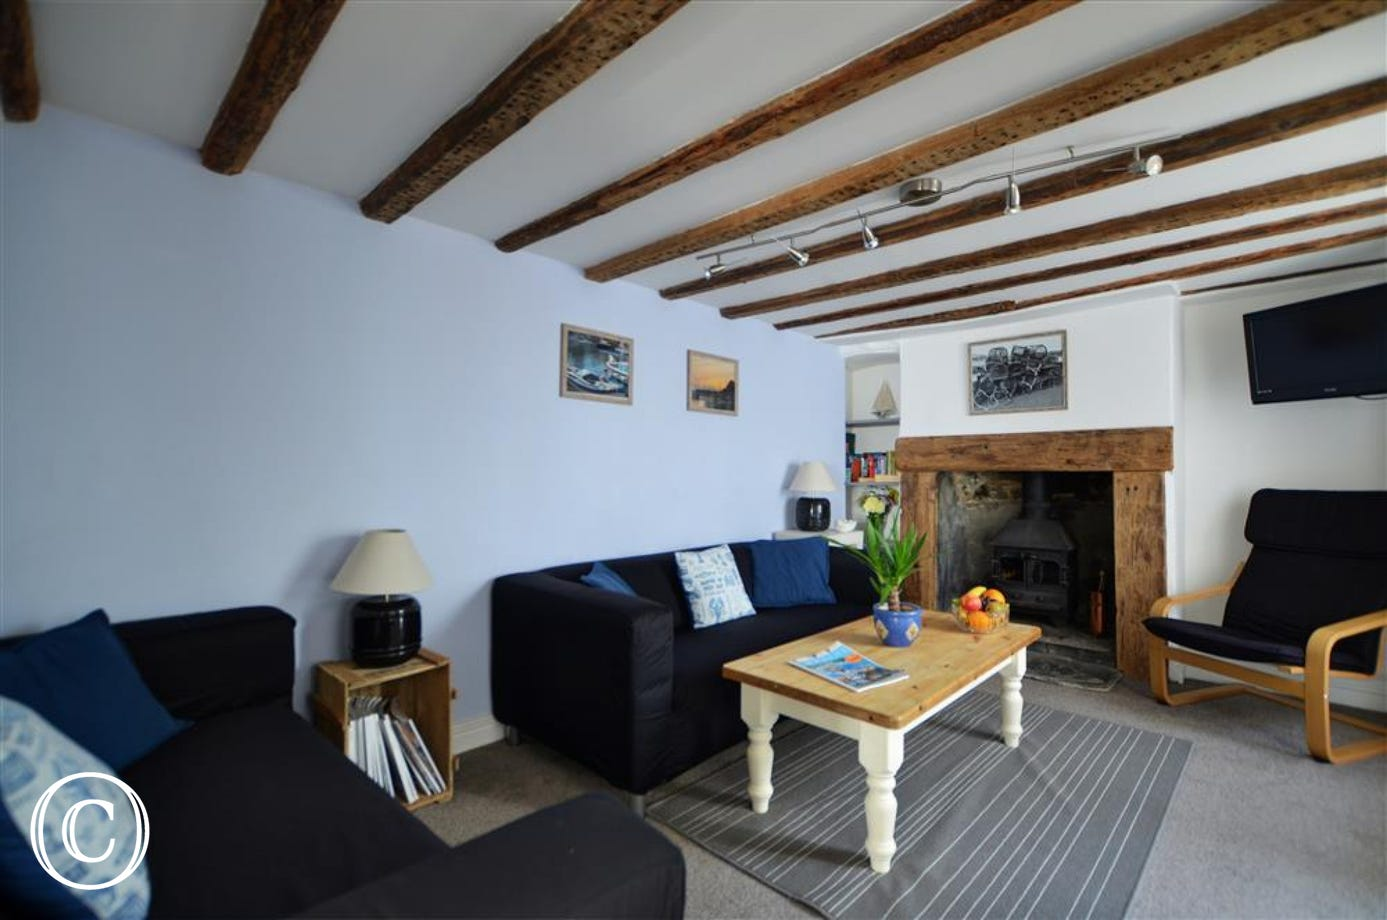 The cottage offers an attractive and cosy beamed lounge with a wood burner in a stone fireplace for comfort in the cooler seasons